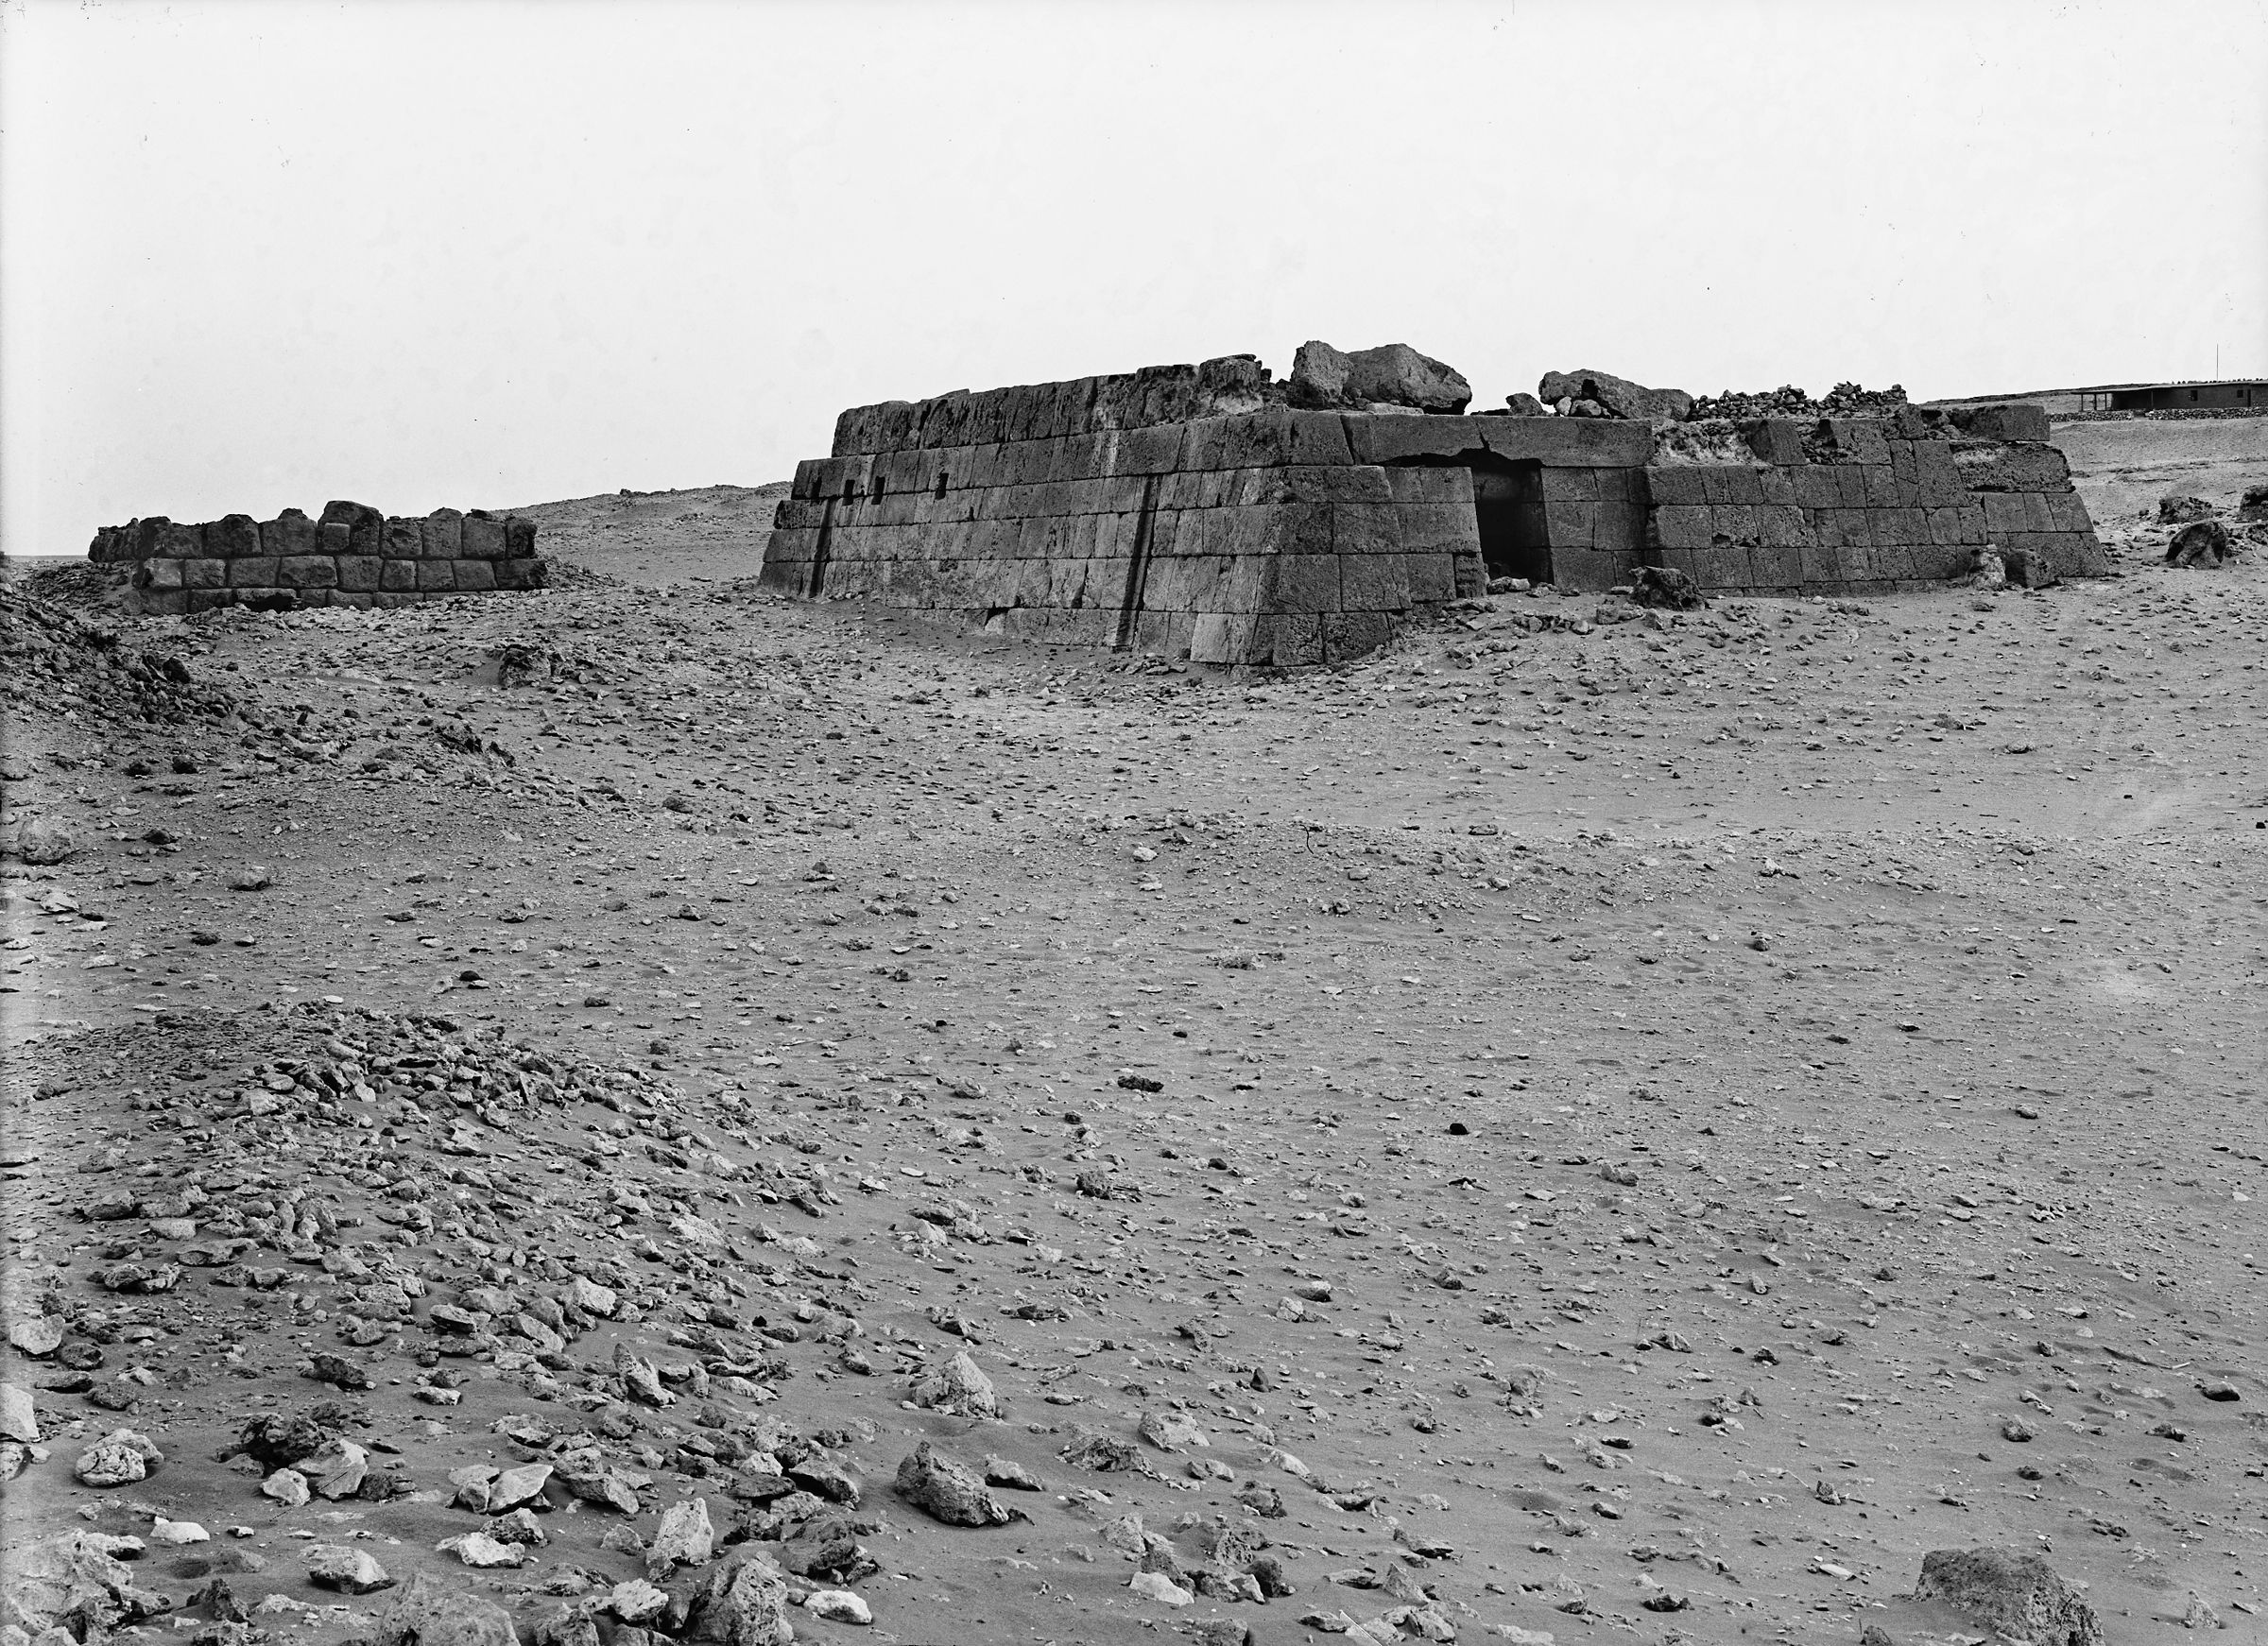 Western Cemetery: Site: Giza; View: Lepsius 14, with part of Hearst Camp/Harvard Camp house in background, to the southwest